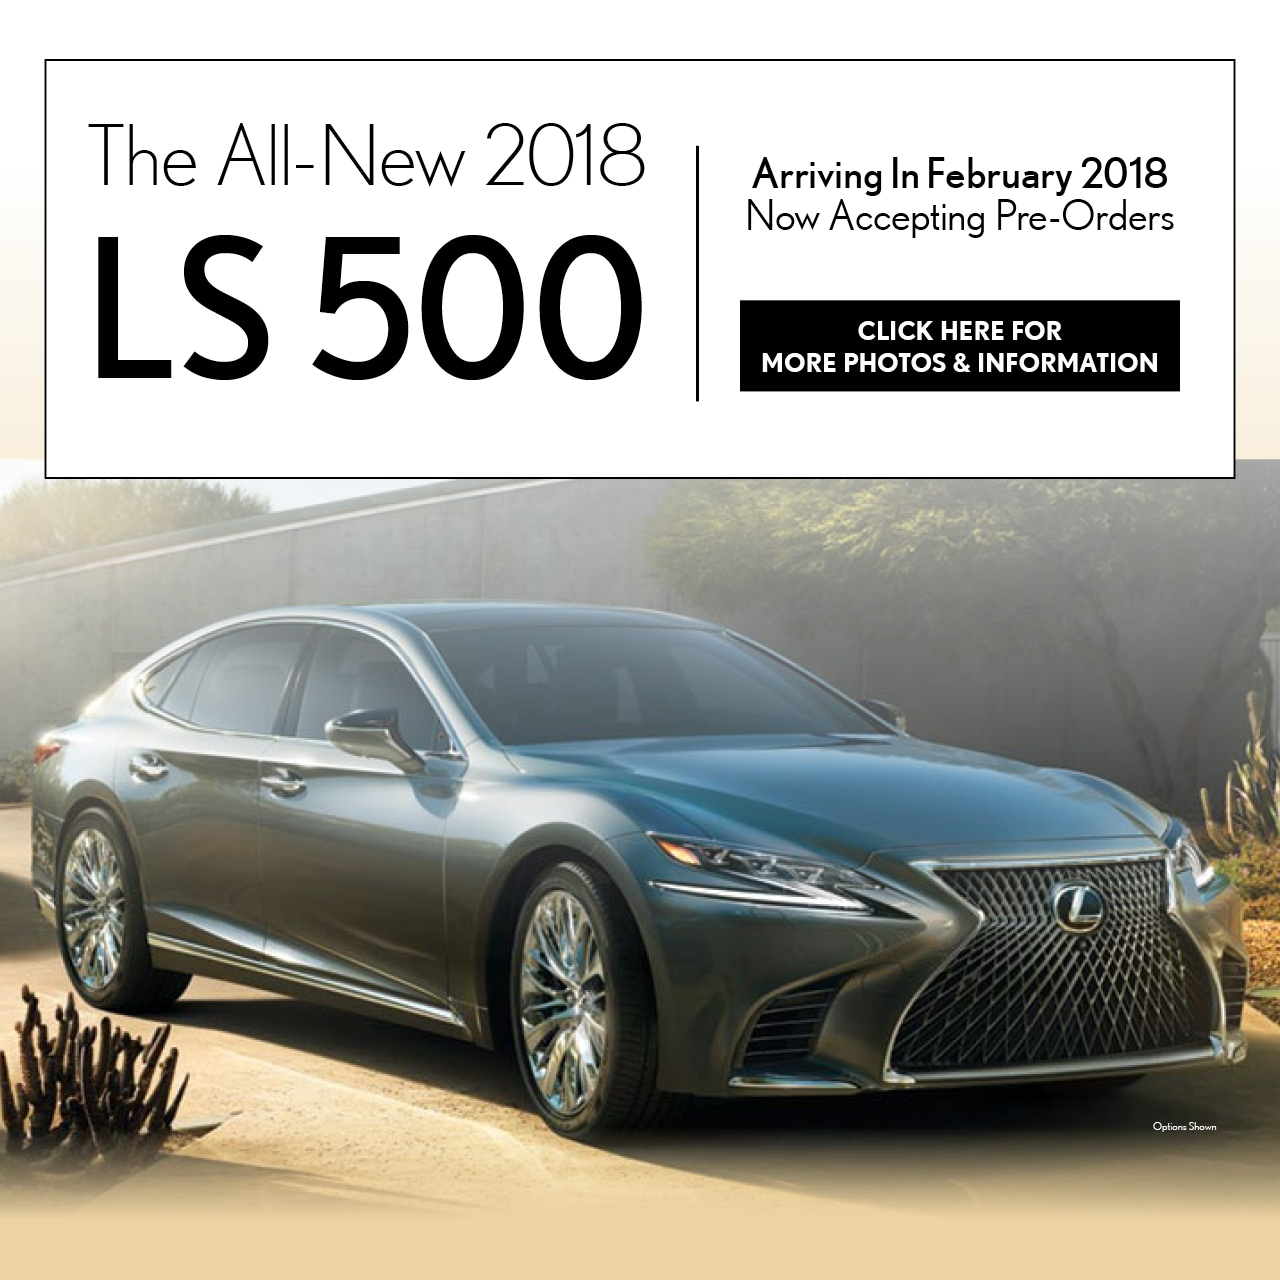 Lexus of Jacksonville  New Lexus dealership in